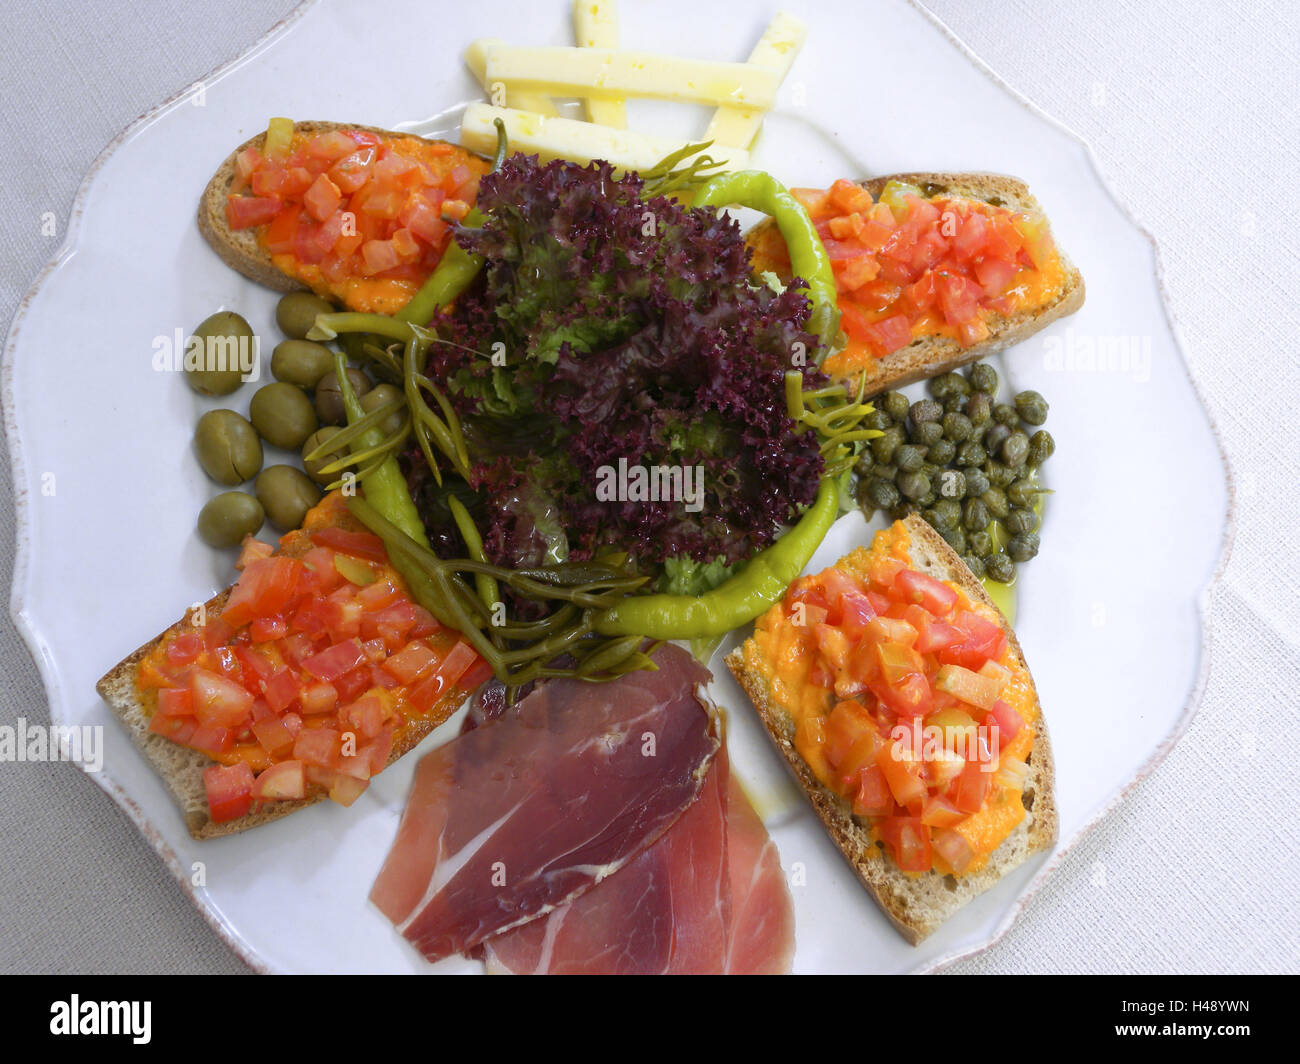 Plate with Tapa, snack, food, Majorca, Spain, - Stock Image